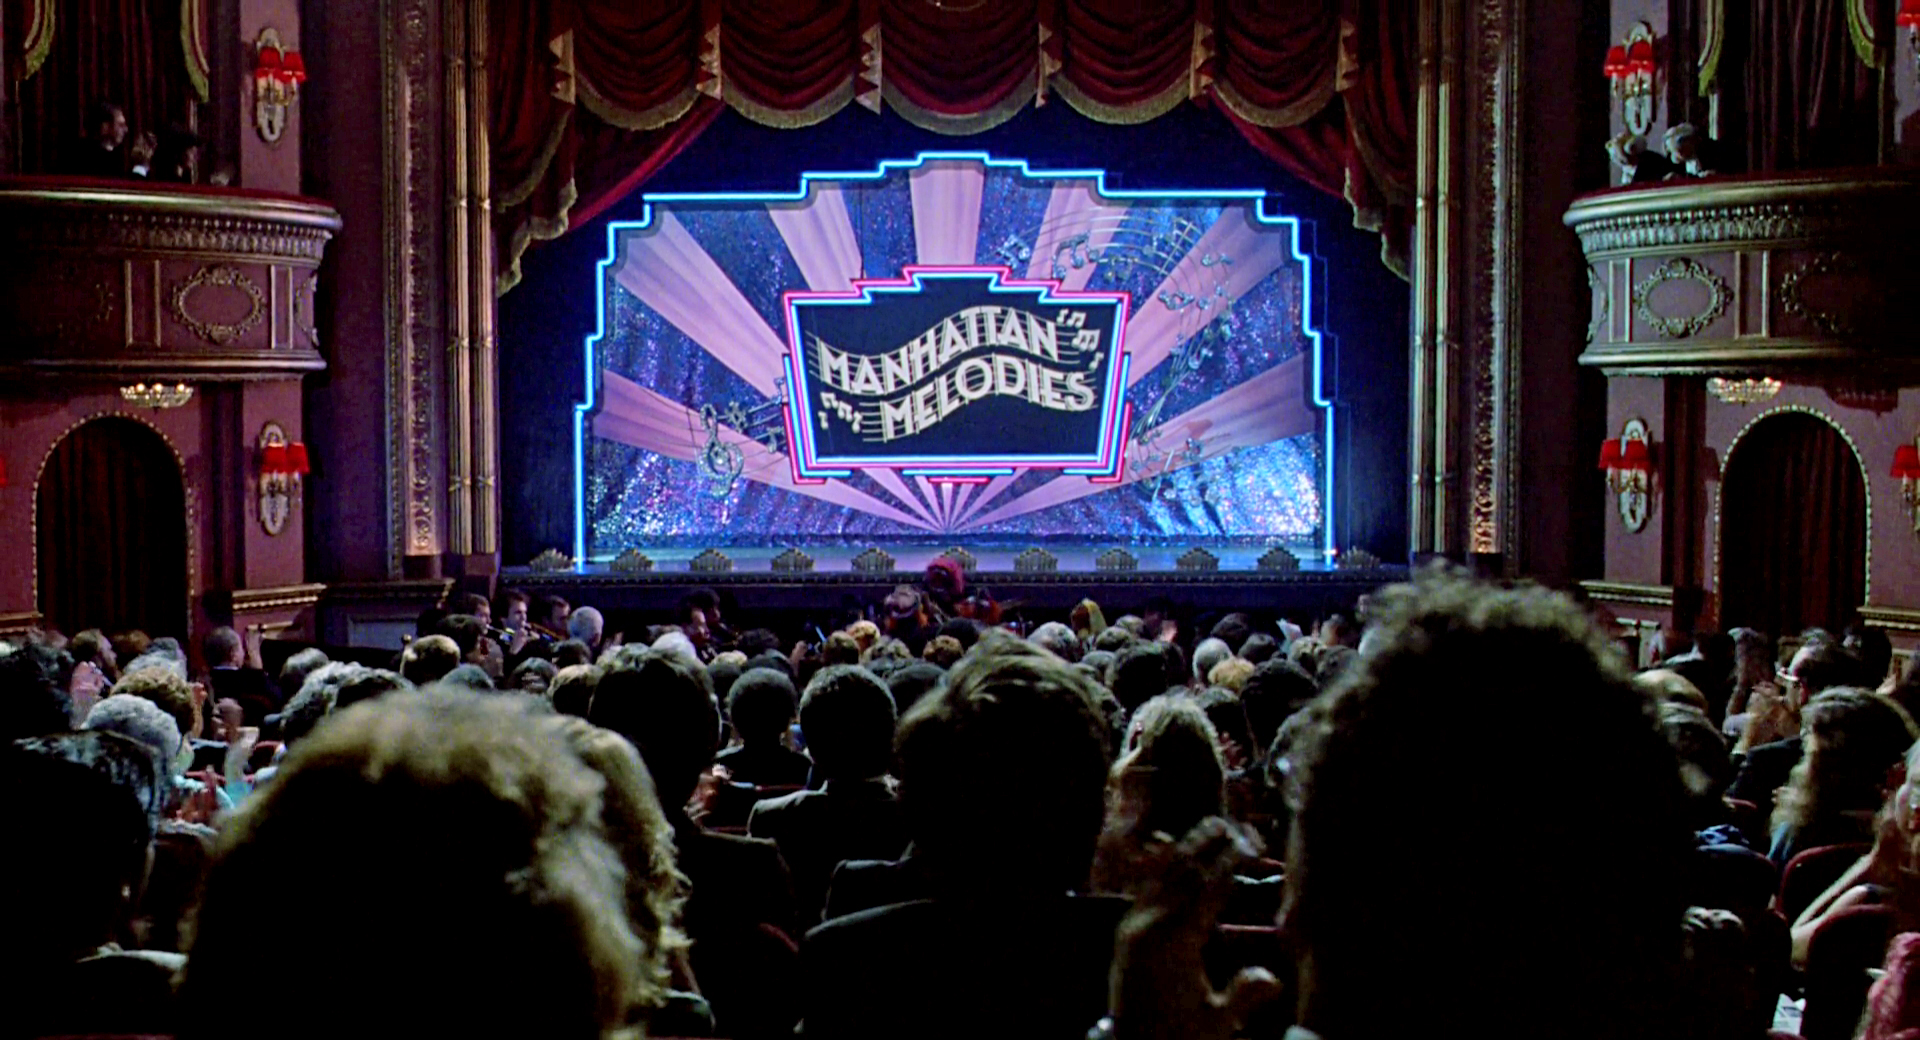 http://images.wikia.com/muppet/images/6/64/ManhattanMelodies1.jpg